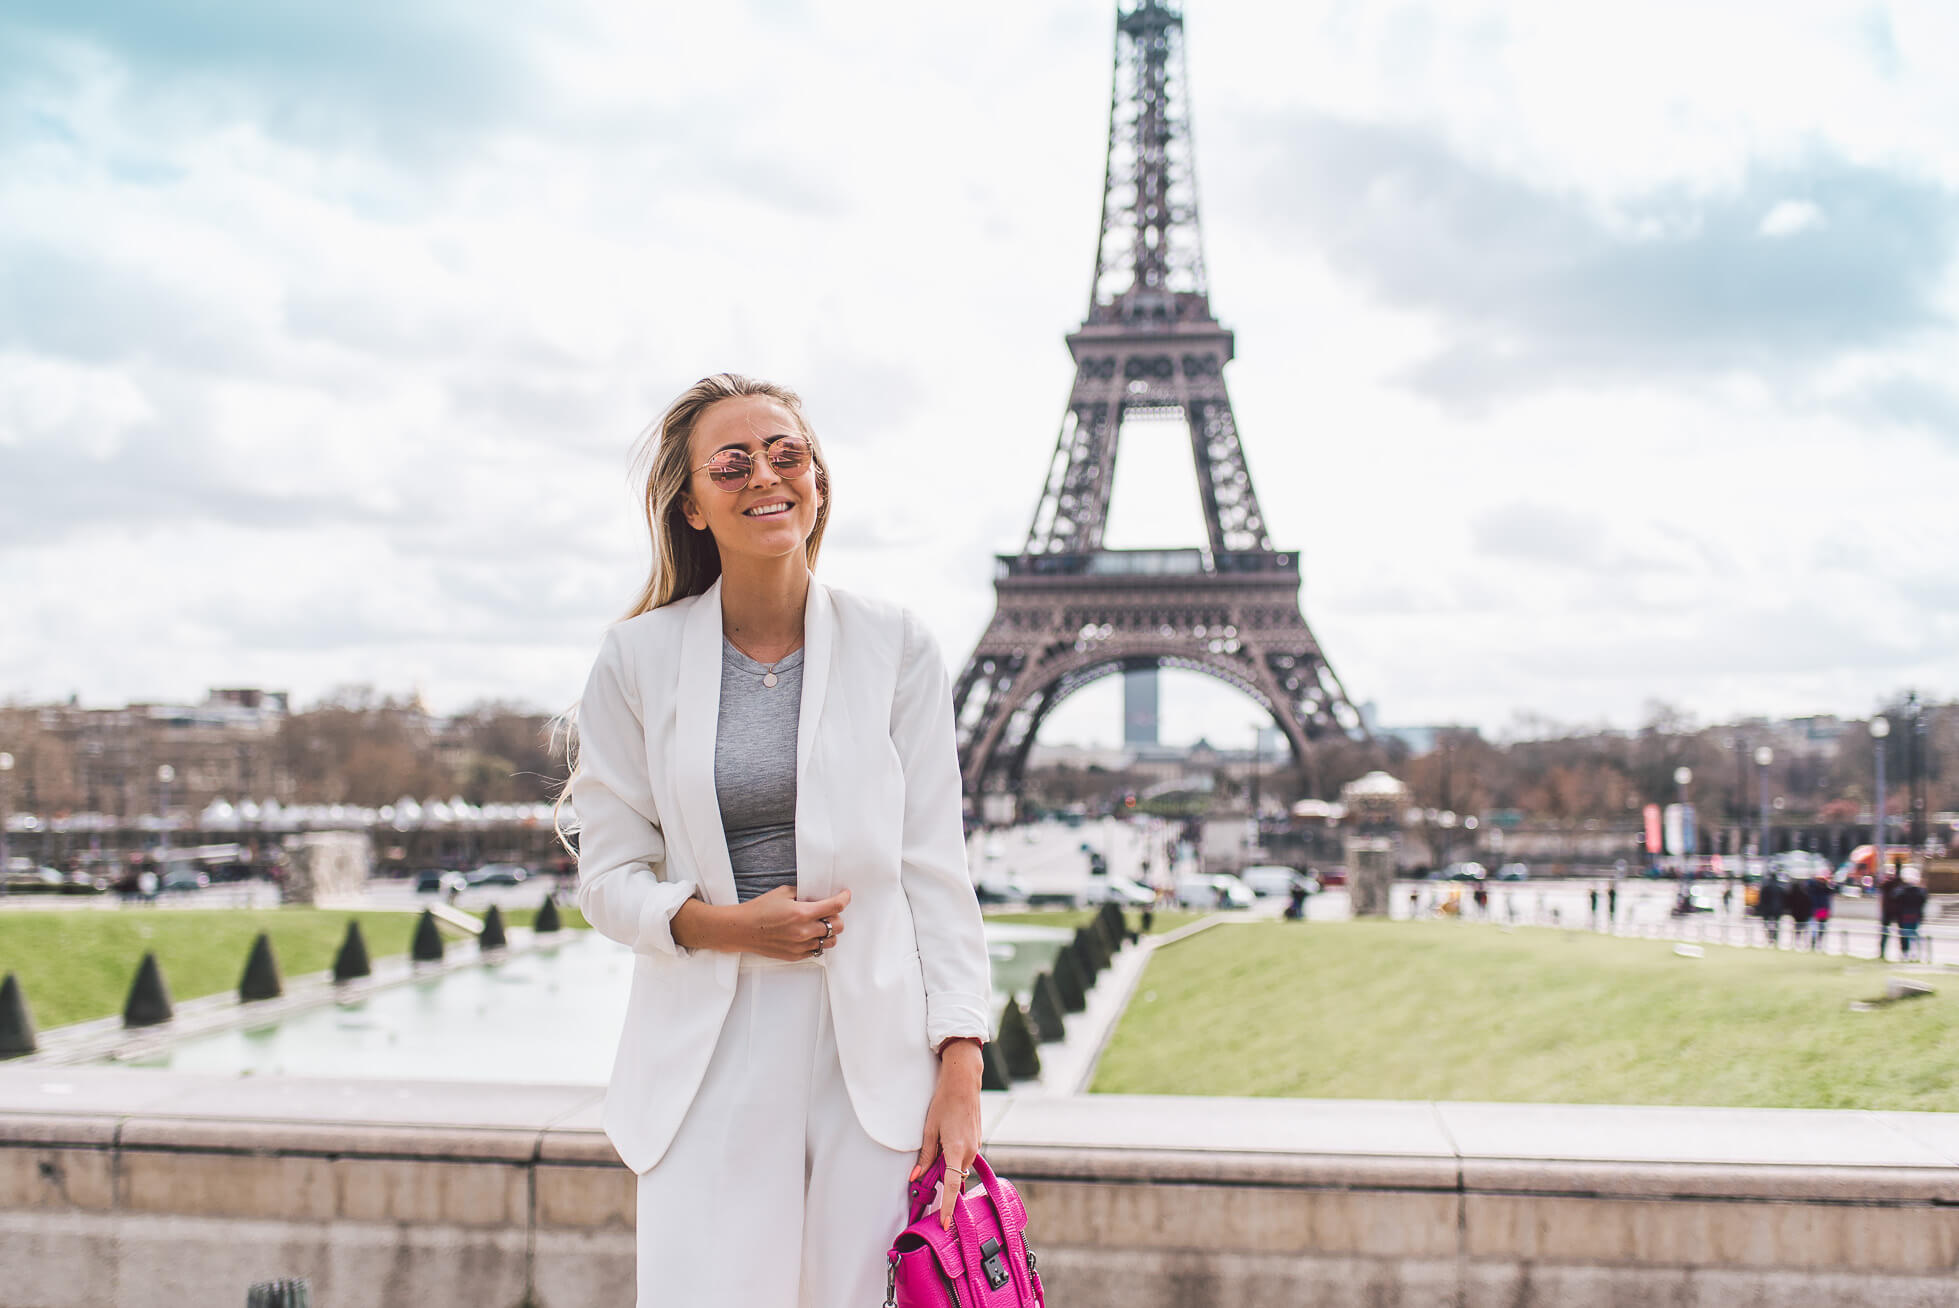 janni-deler-paris-guided-by-style-ginatricotDSC_2020